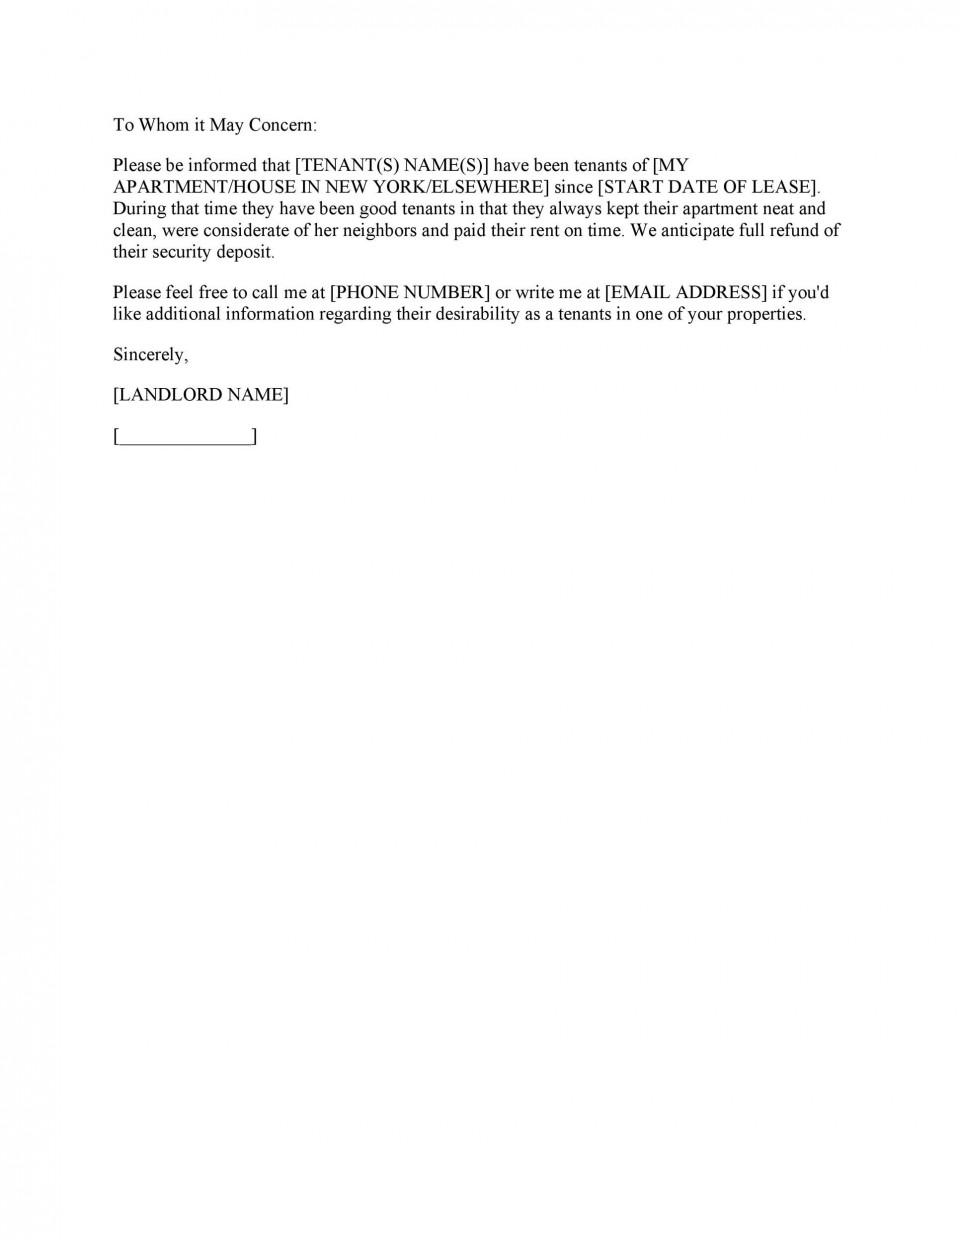 003 Unbelievable Free Reference Letter Template For Tenant Photo 960